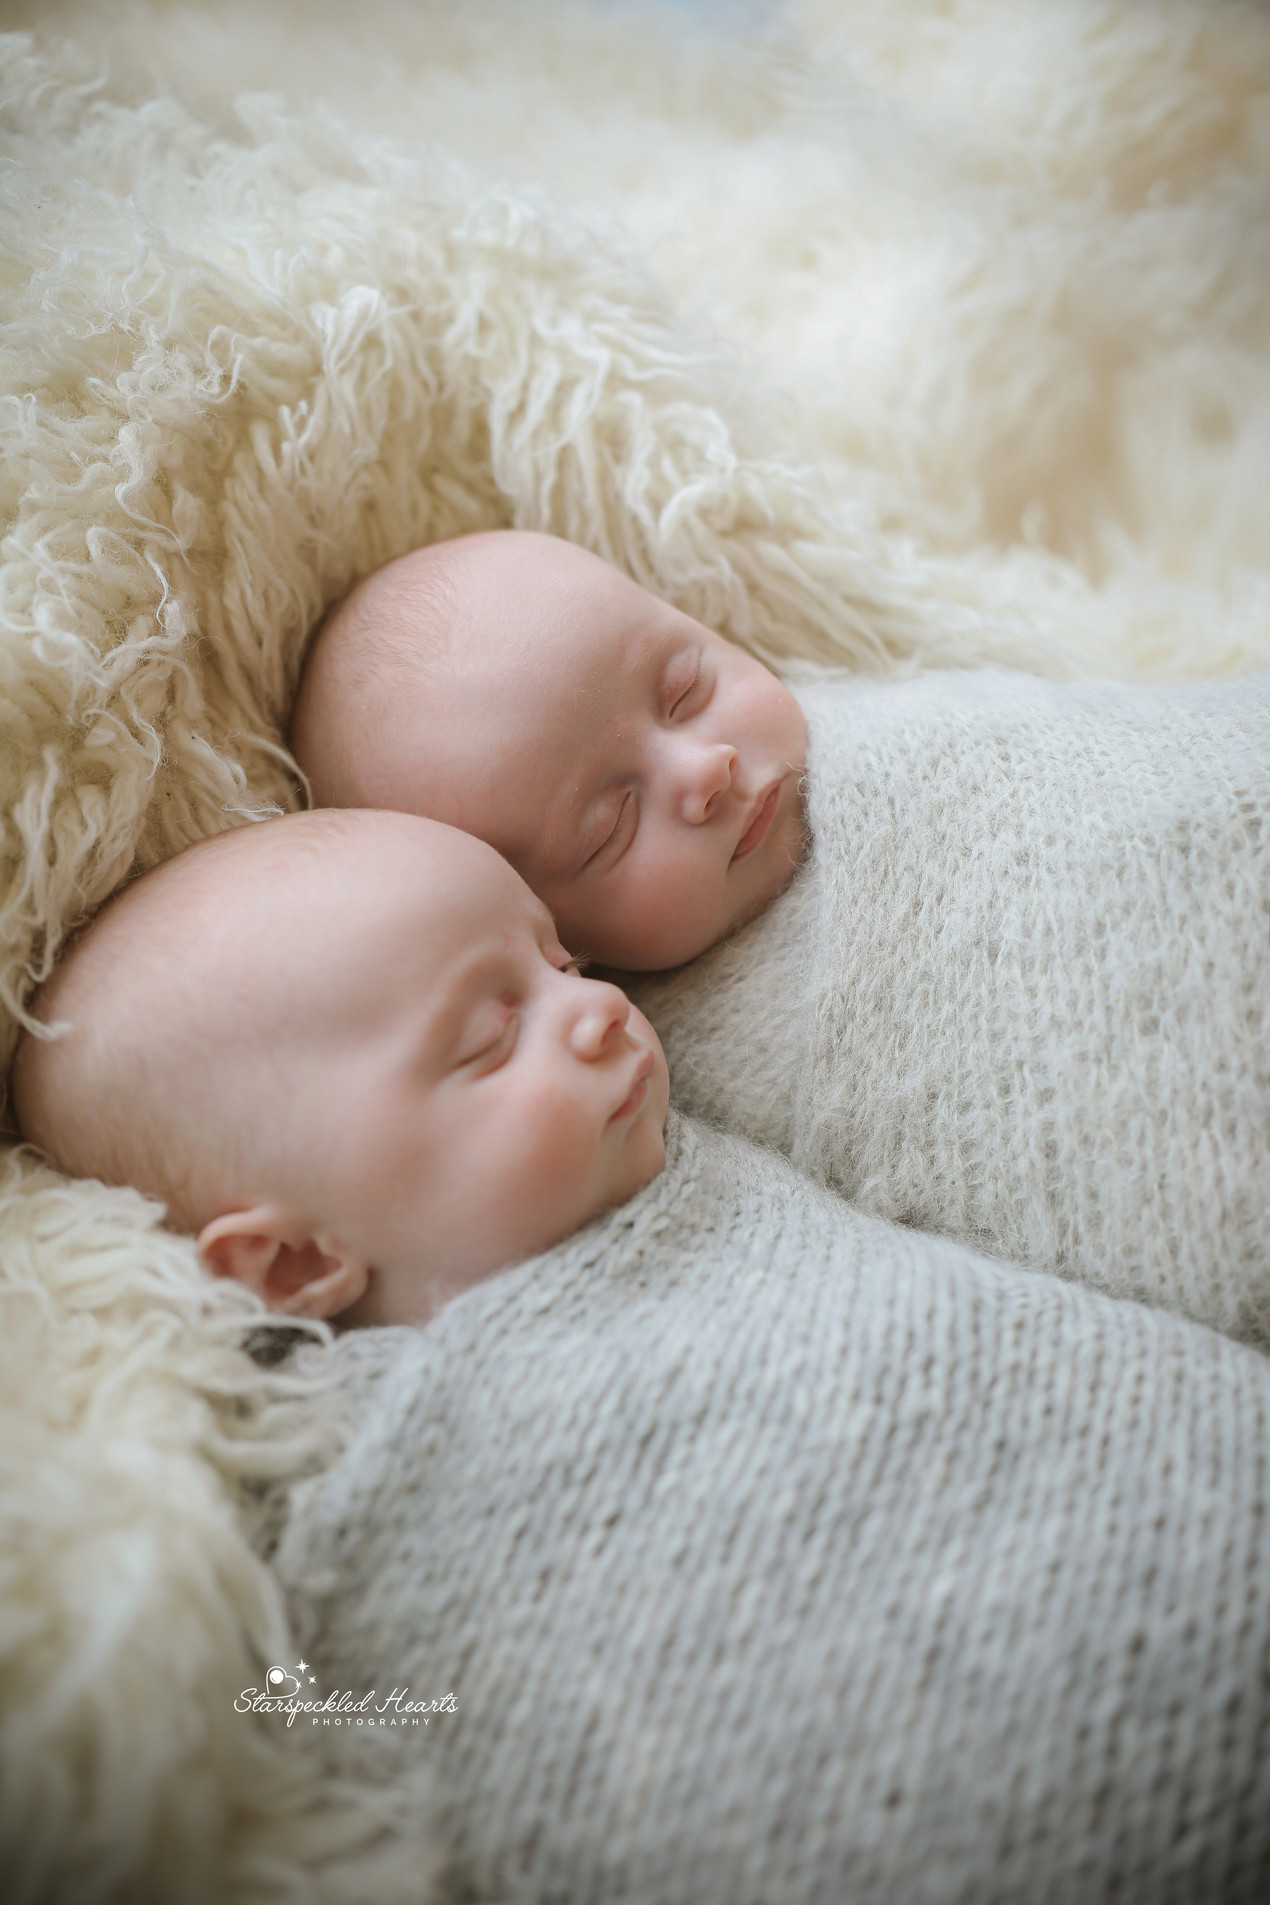 gorgeous identical twin boys fast asleep, wrapped in grey and laying cuddled up together on a white rug